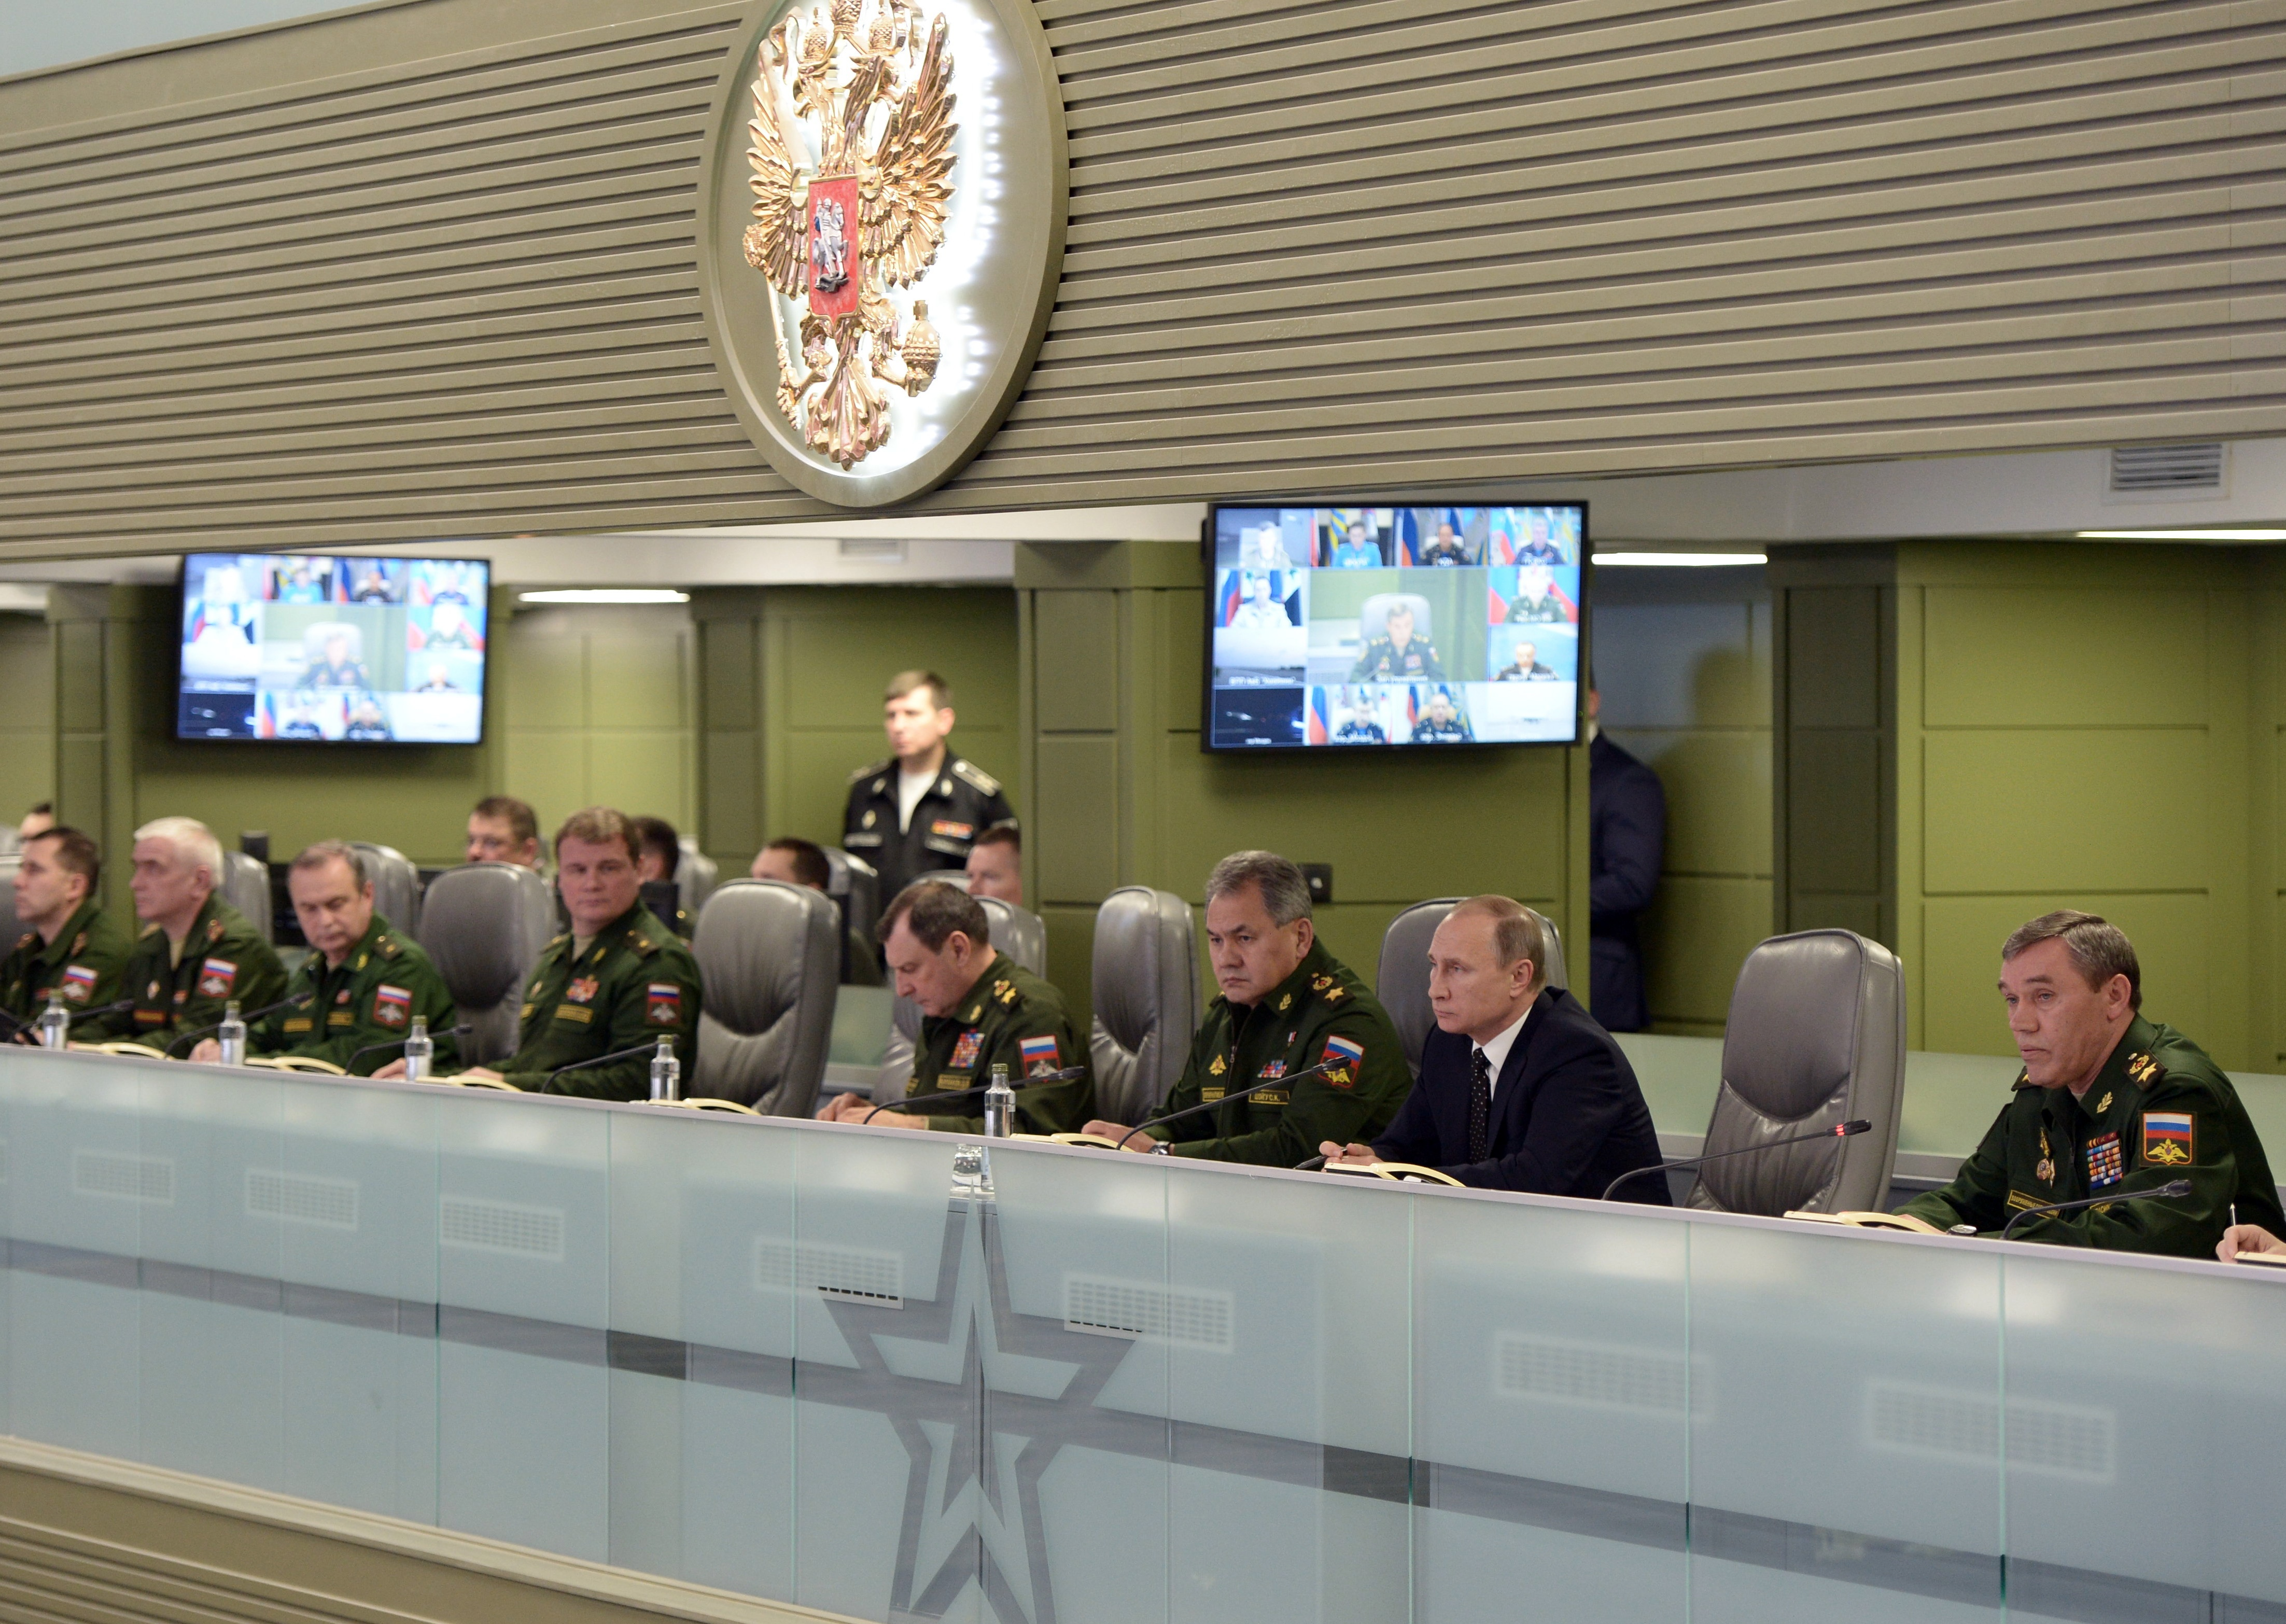 Russian President Vladimir Putin, second right, flanked by Defense Minister Sergei Shoigu, third right, and Chief of the General Staff of the Russian Armed Forces Valery Gerasimov, right, attends a meeting on Russian airspace forces' activities in Sy...